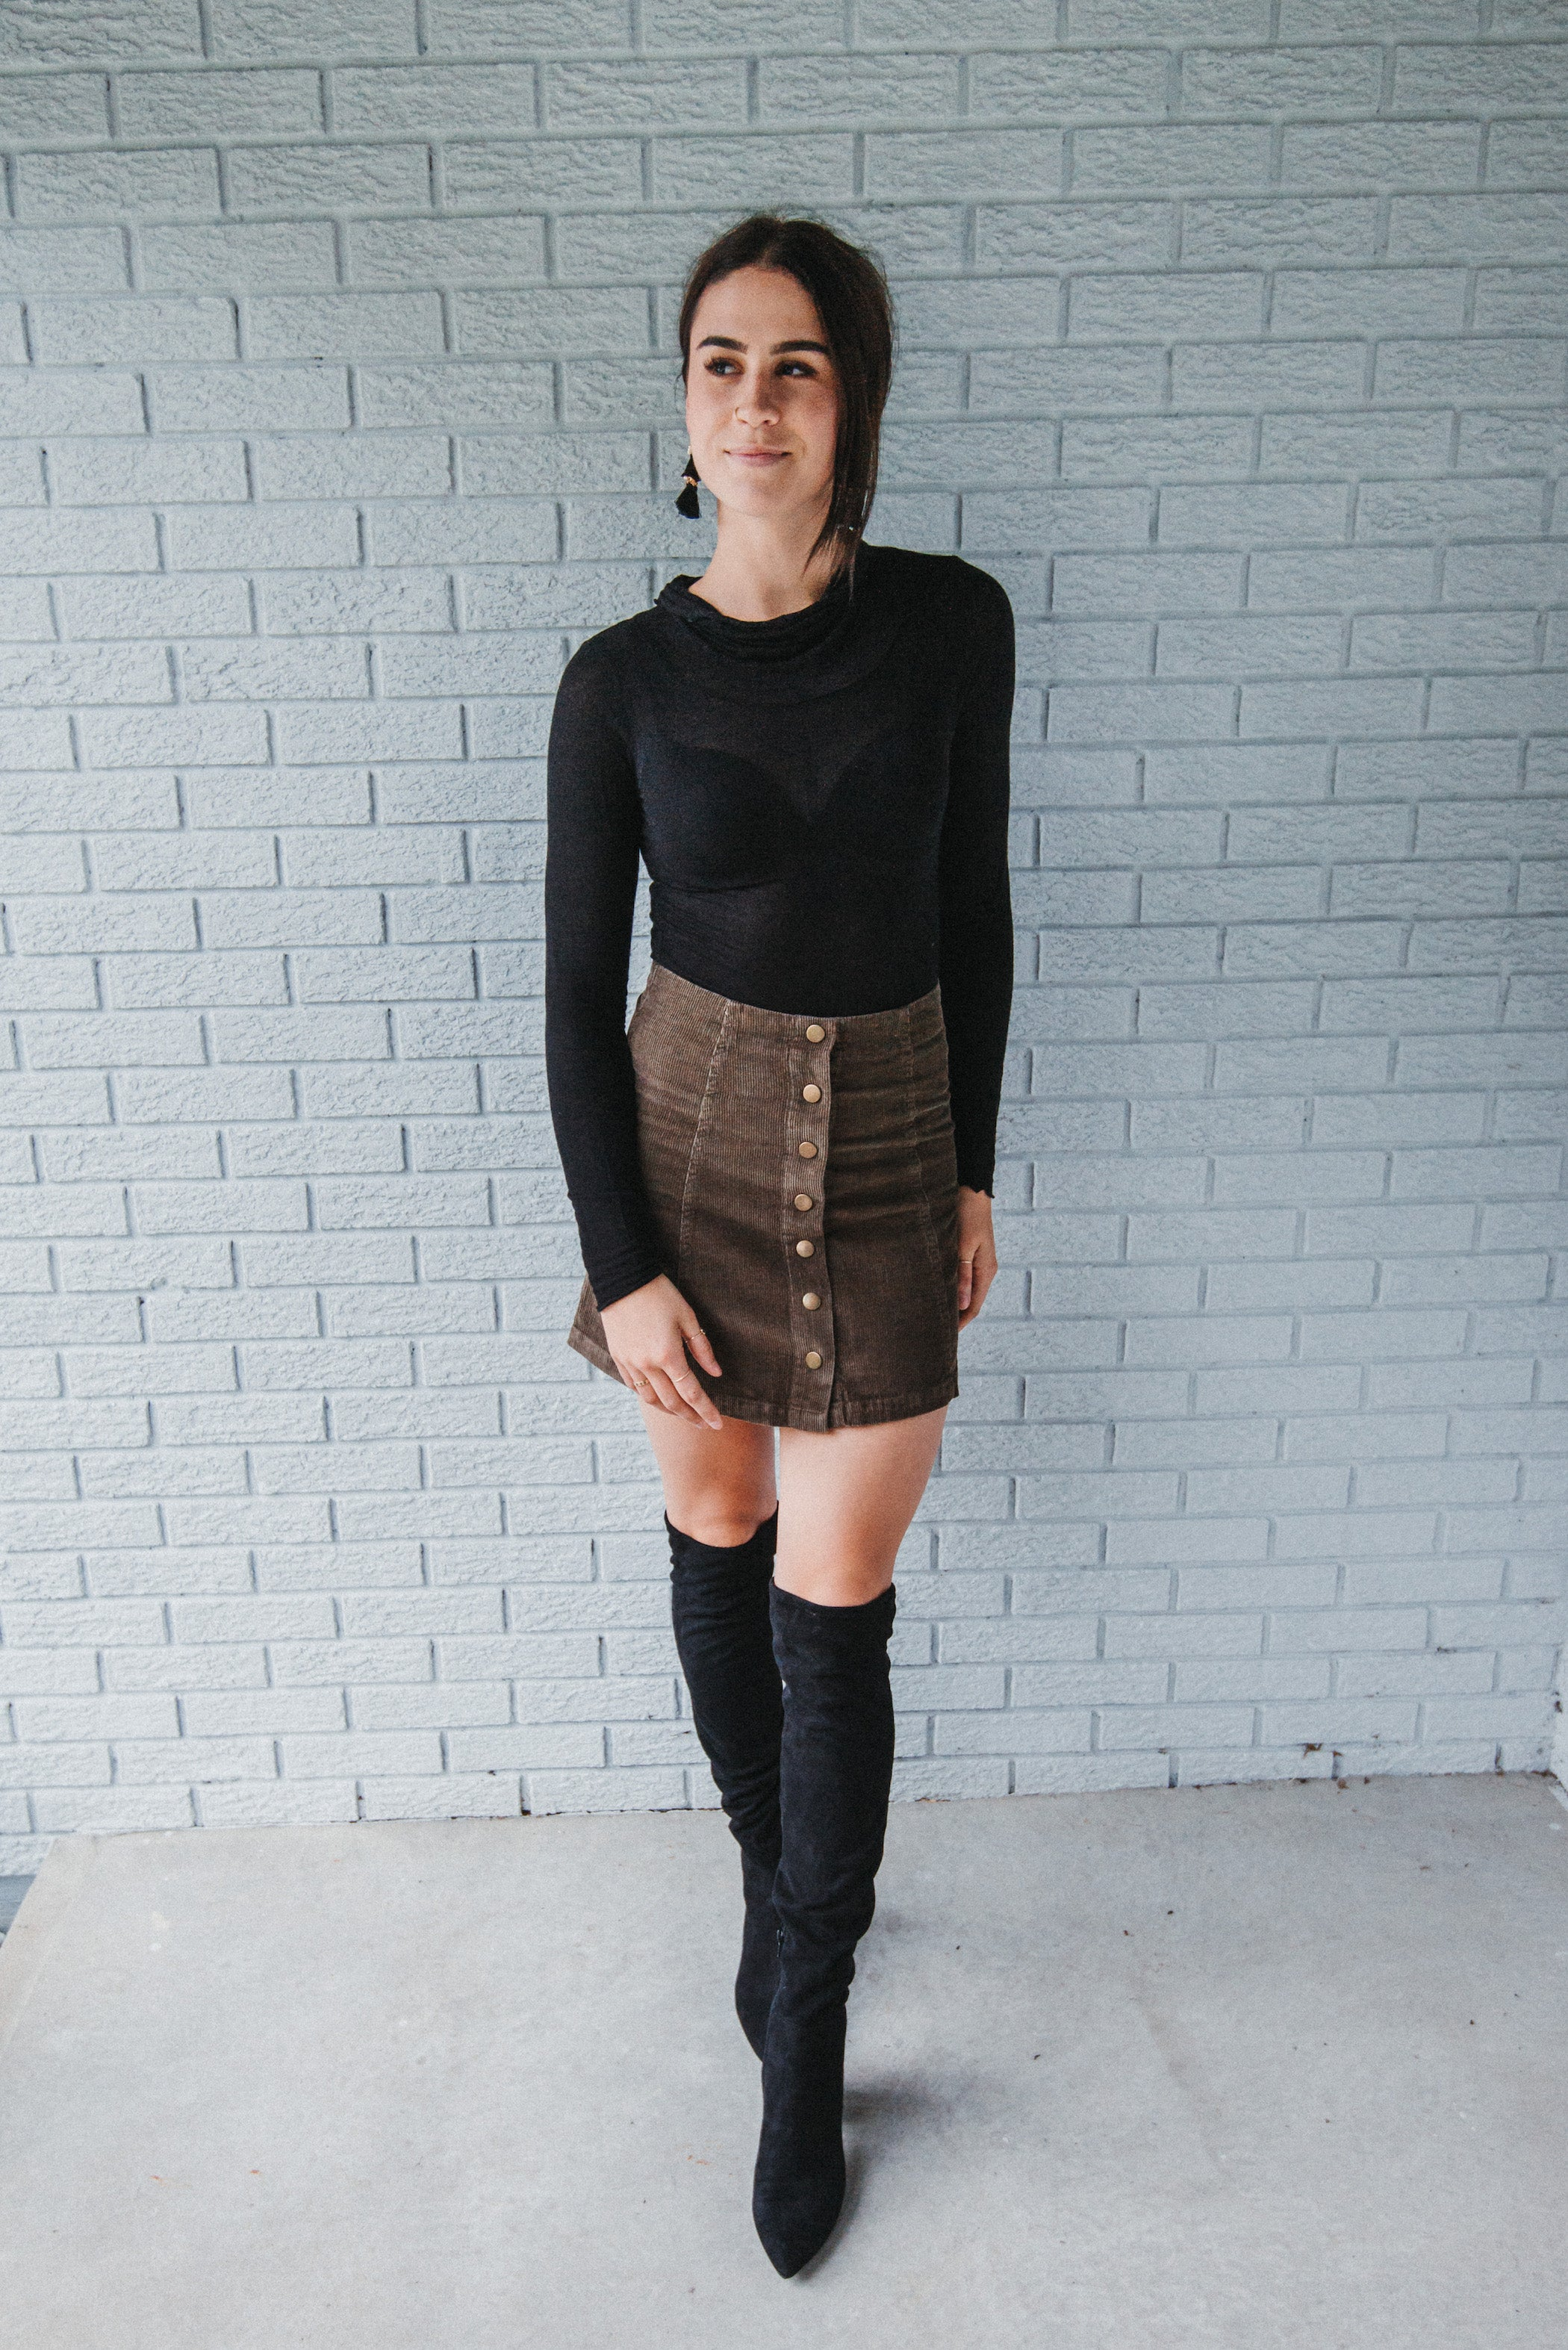 Retro Vibes Corduroy Skirt / FINAL SALE